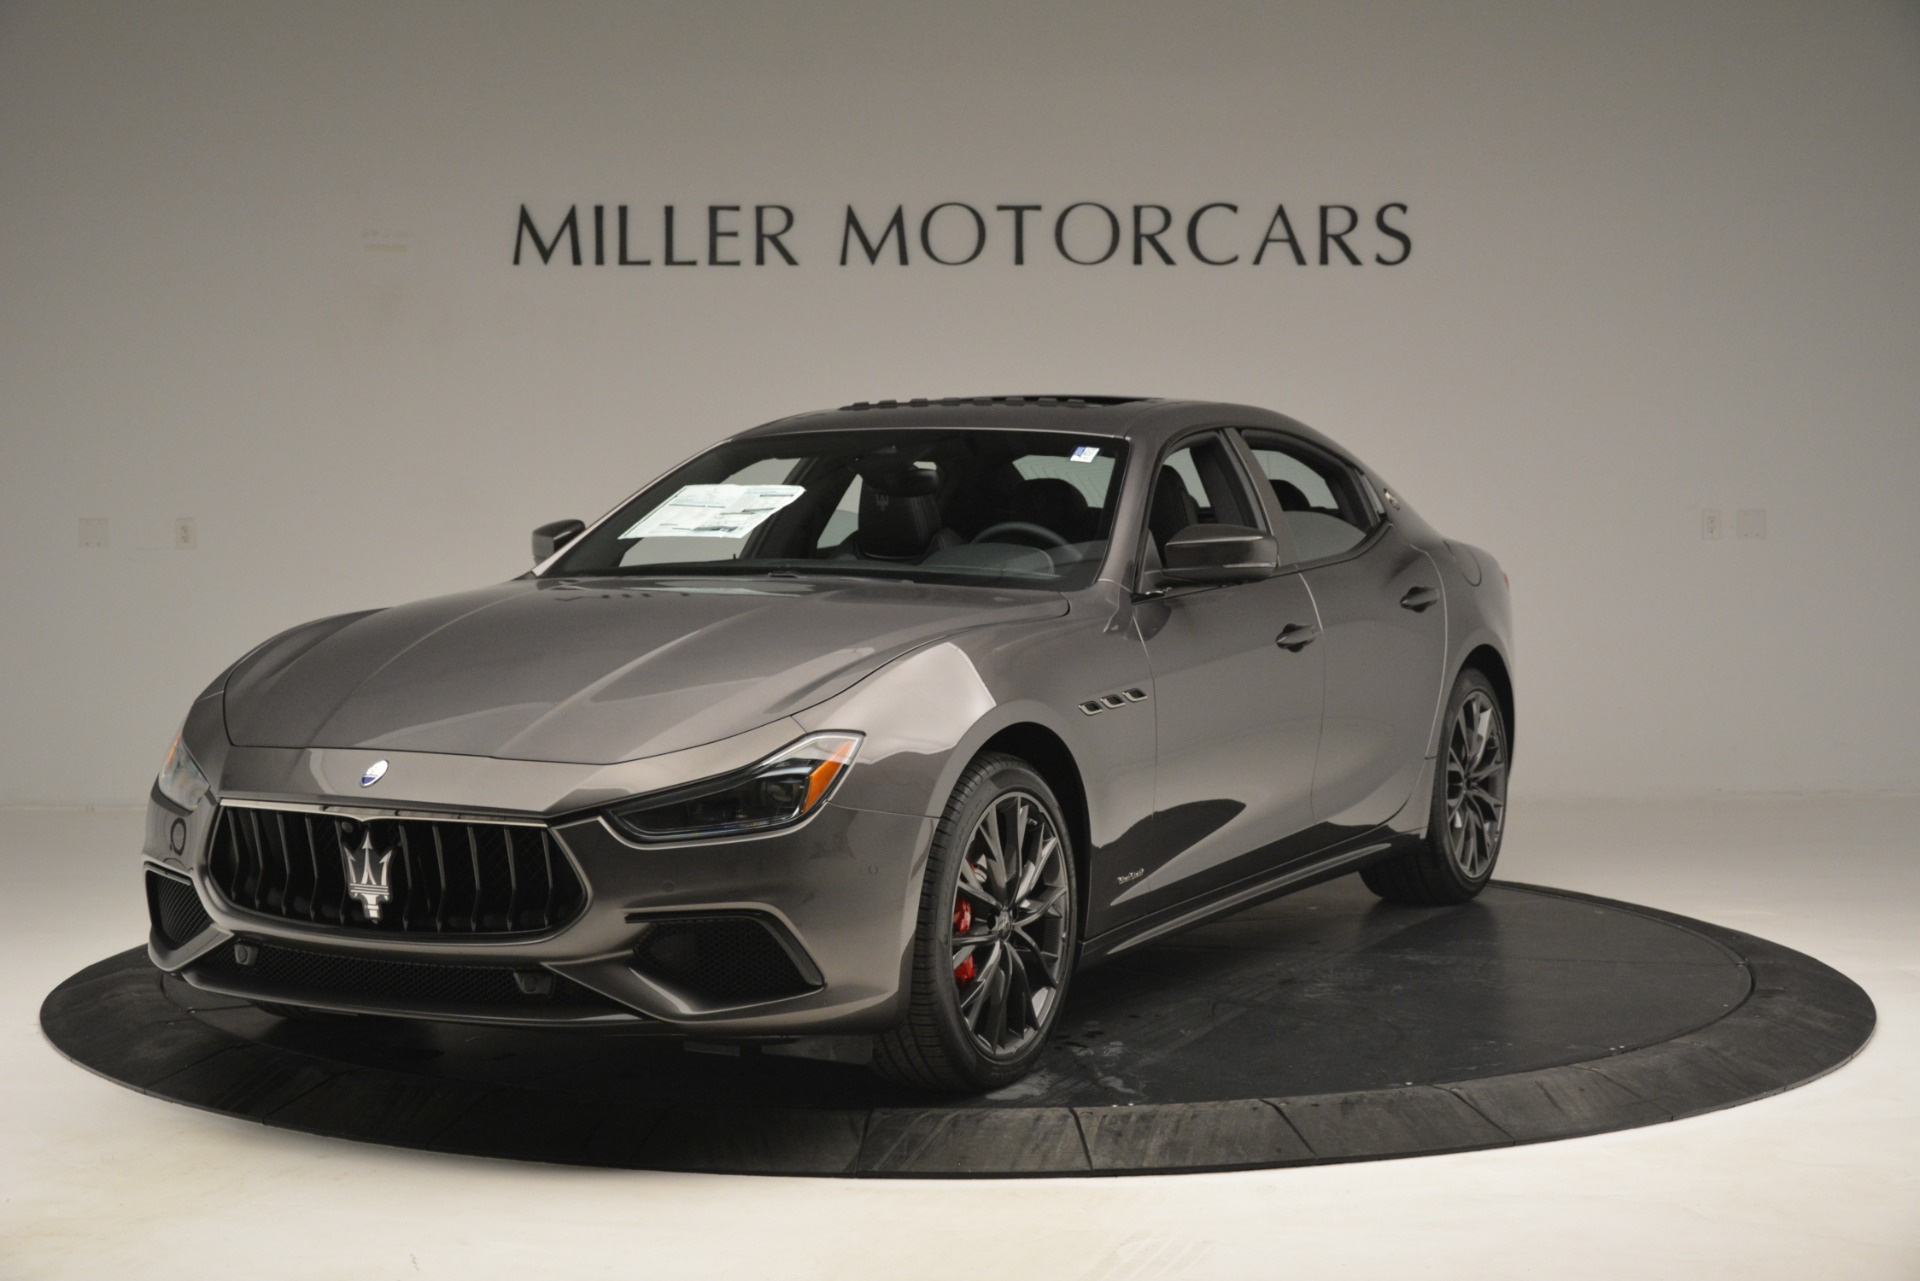 New 2019 Maserati Ghibli S Q4 GranSport For Sale In Greenwich, CT. Alfa Romeo of Greenwich, W670